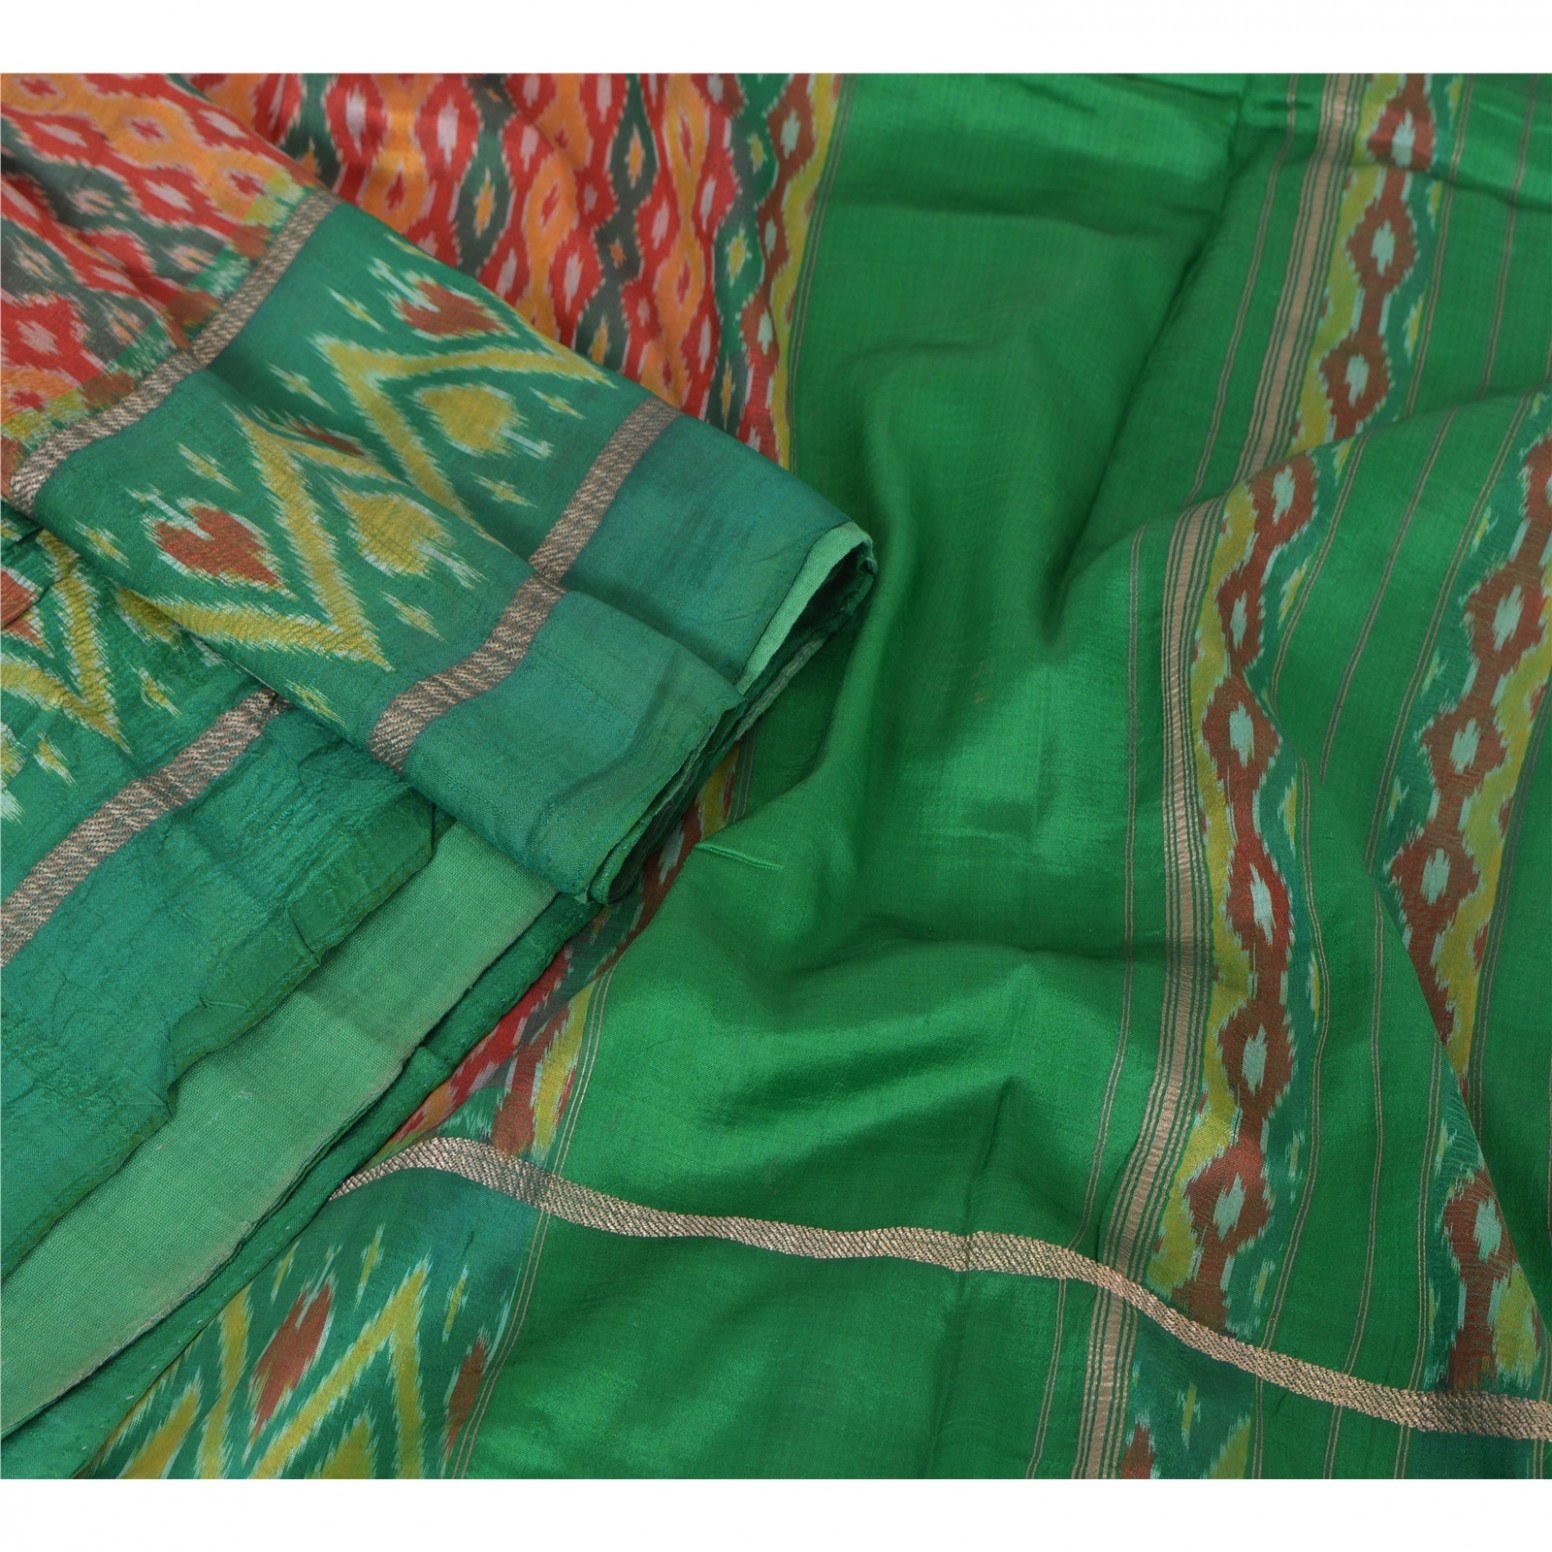 Sanskriti Vintage Indian Saree Woven Patola Sari Fabric